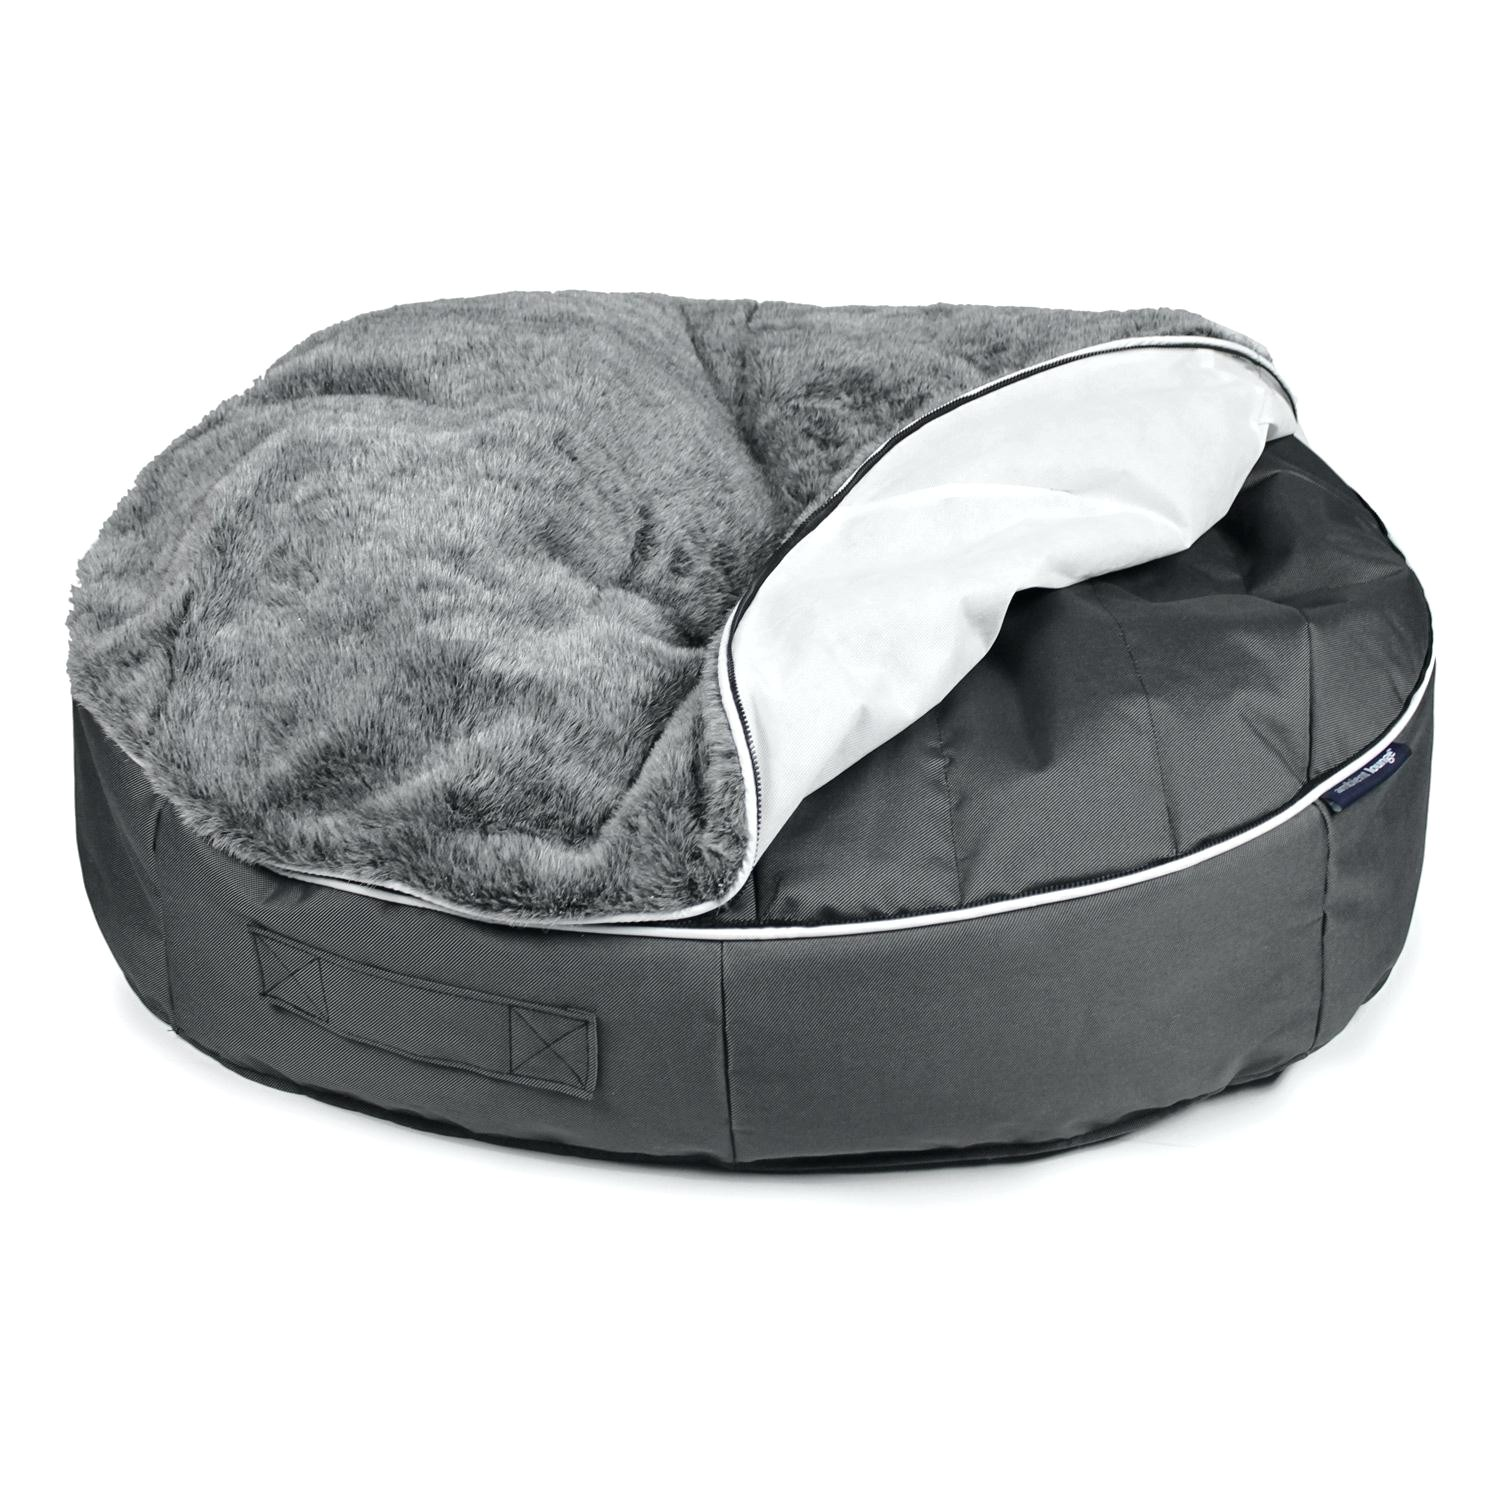 dachshund hot dog bun bed anti chew raised dog beds noten animals f7a6bea977b4ffcf